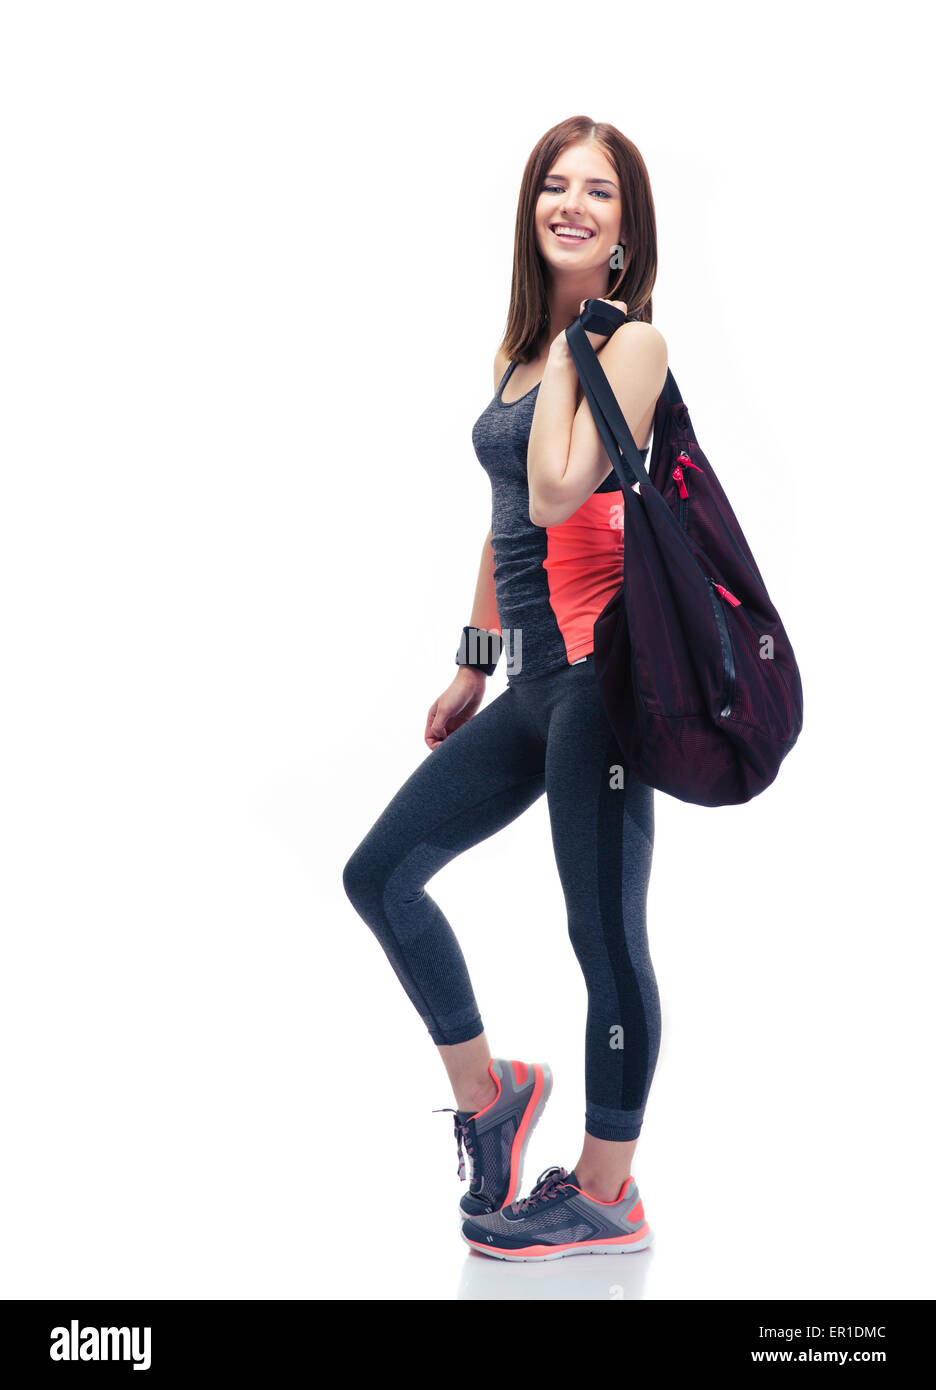 b773c8af Full length portrait of a happy woman standing with sports bag isolated on  a white background